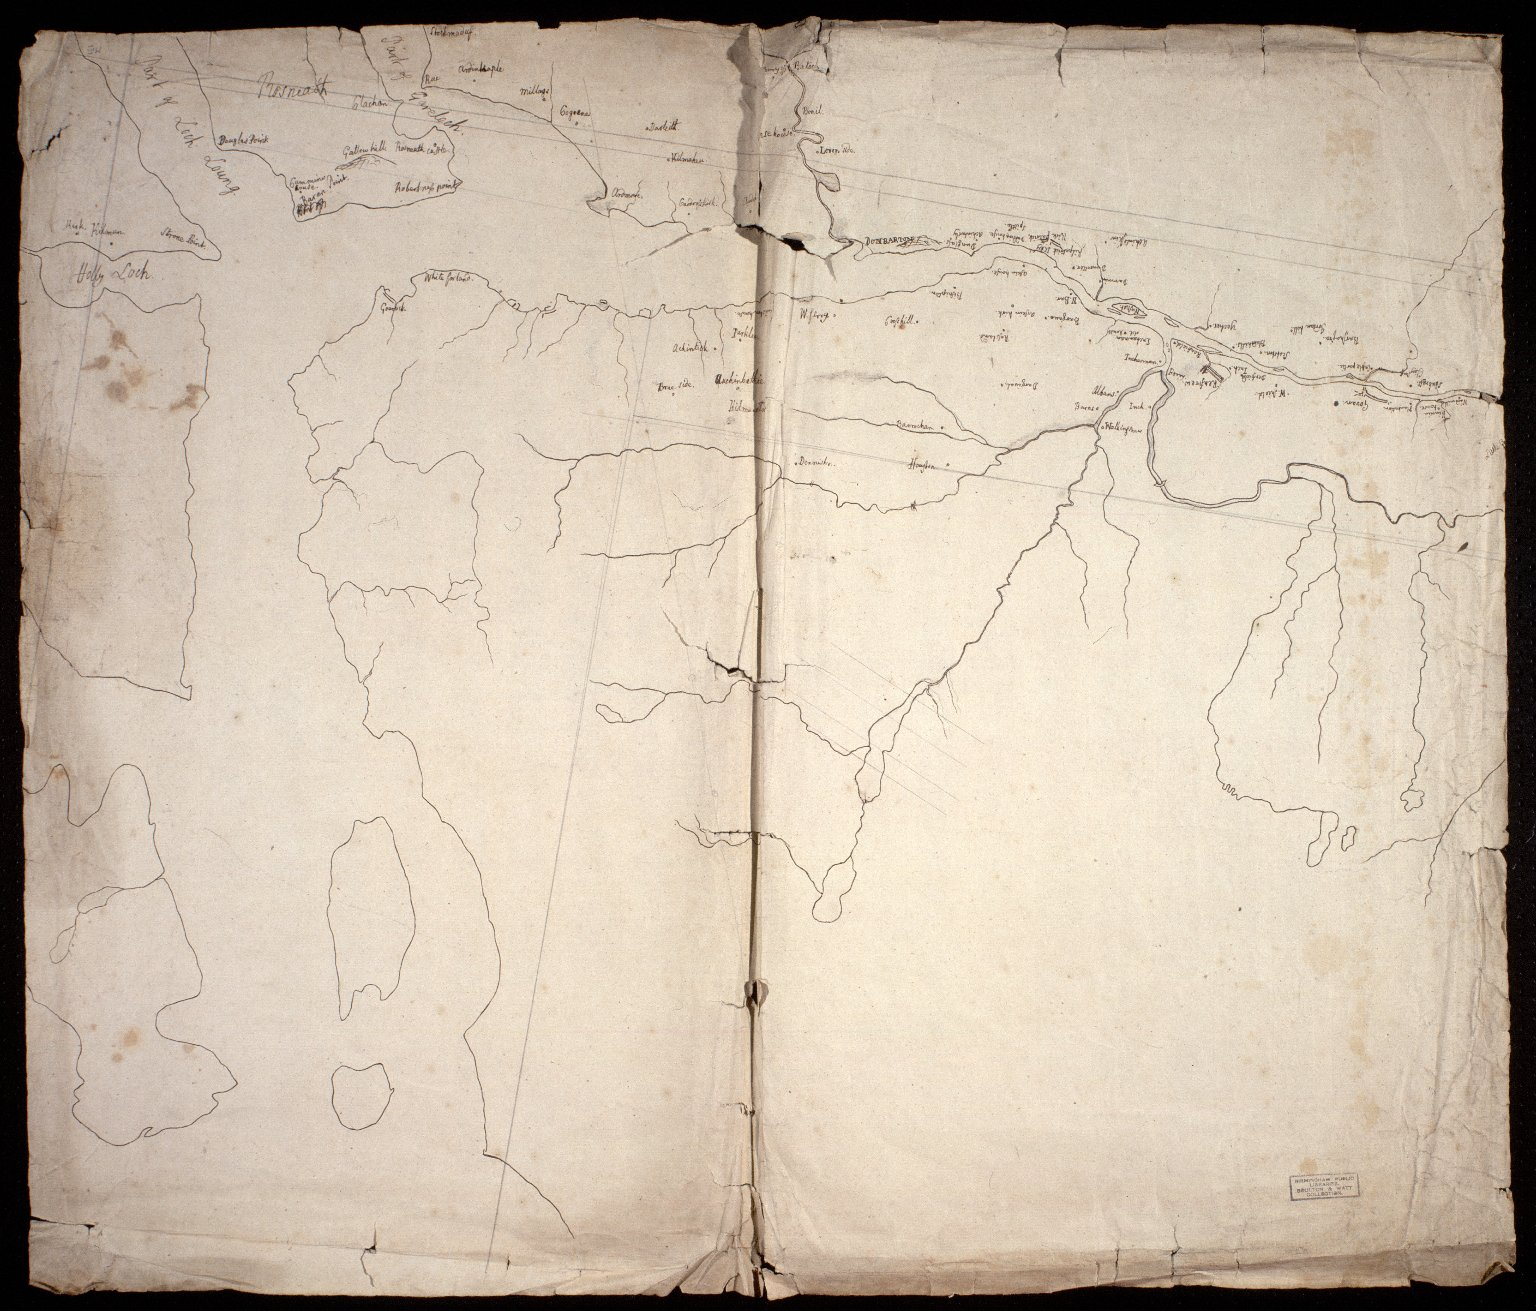 [Unfinished map of the Firth of Clyde] [1 of 1]